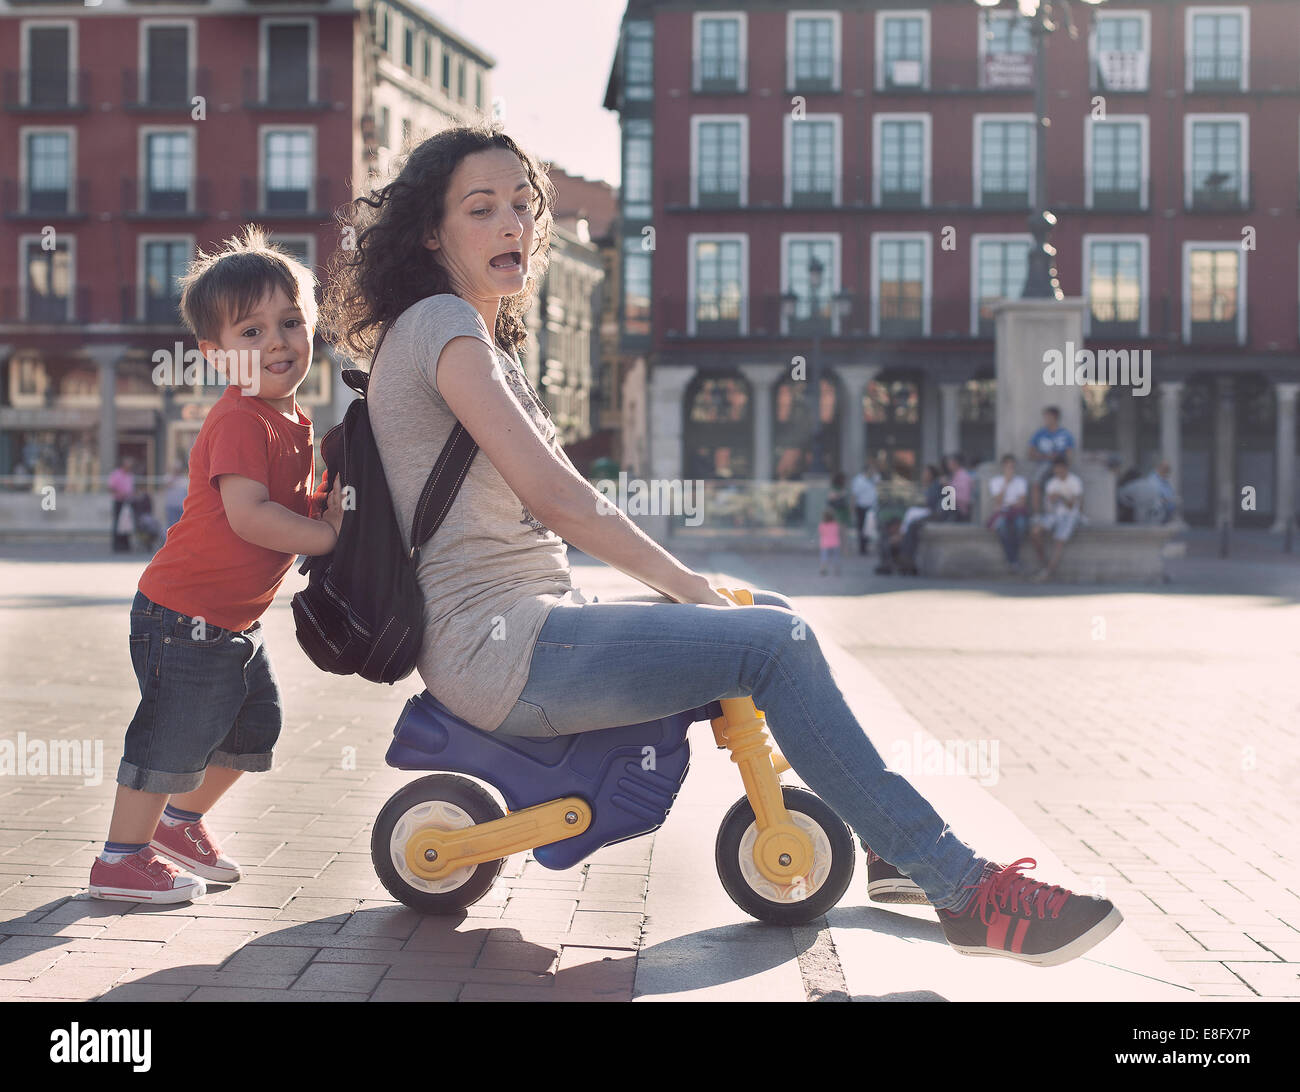 Boy pushing his mother on a toy tricycle - Stock Image